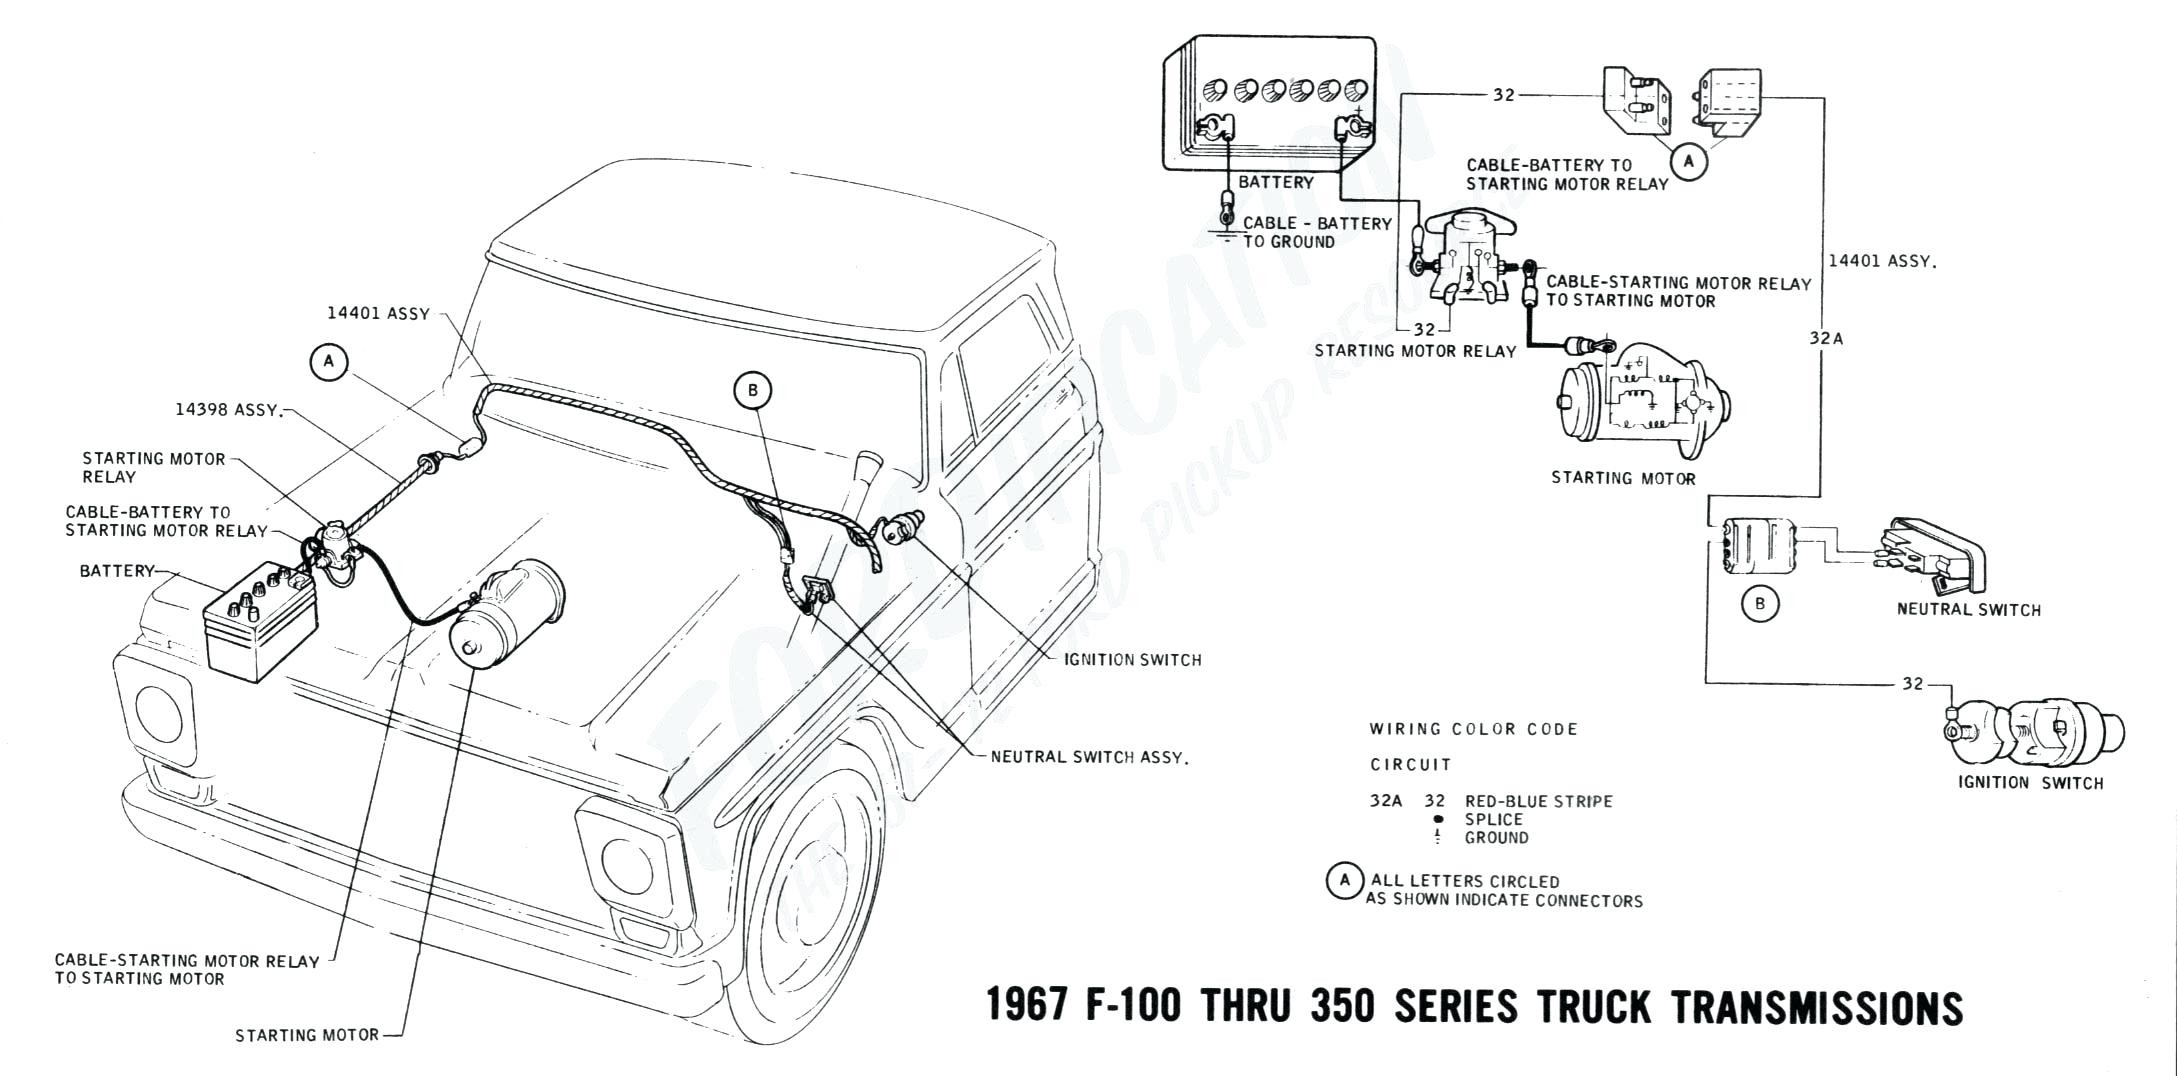 91 Bronco Starter Motor Wiring Diagram Wire Center